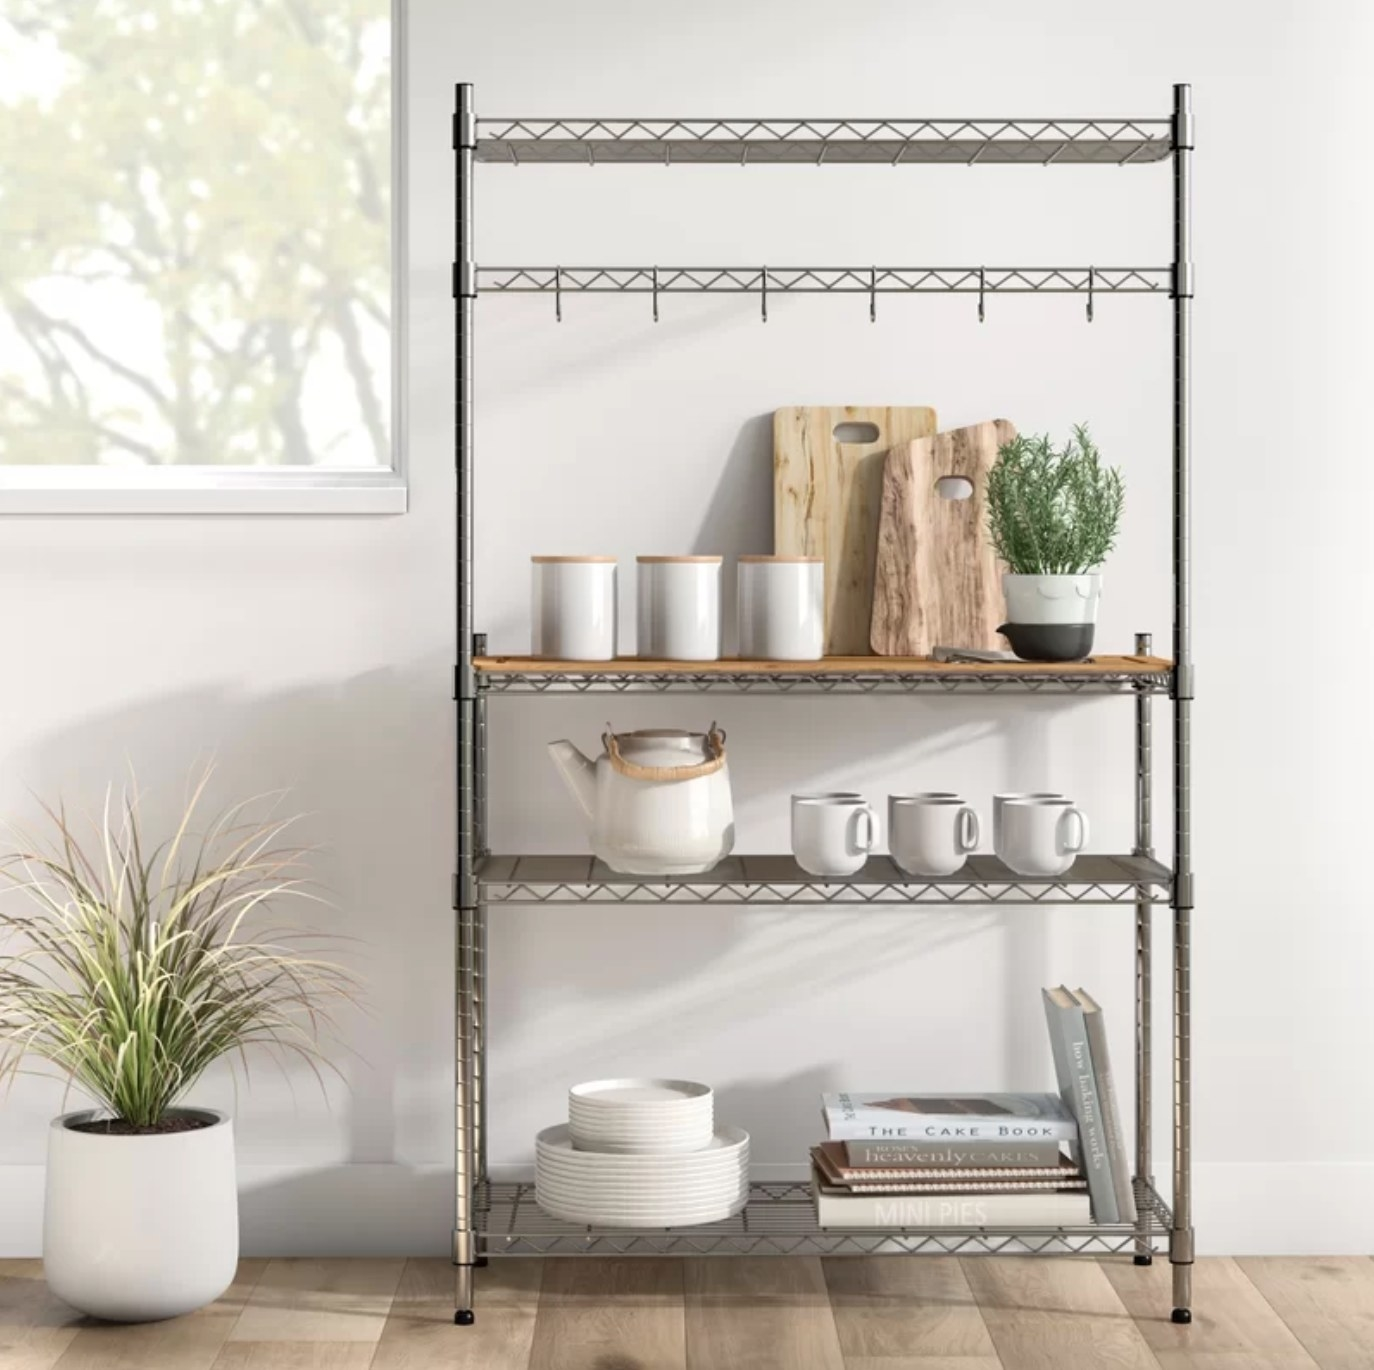 The chrome baker's rack holding cups, bowls, cutting boards, and more